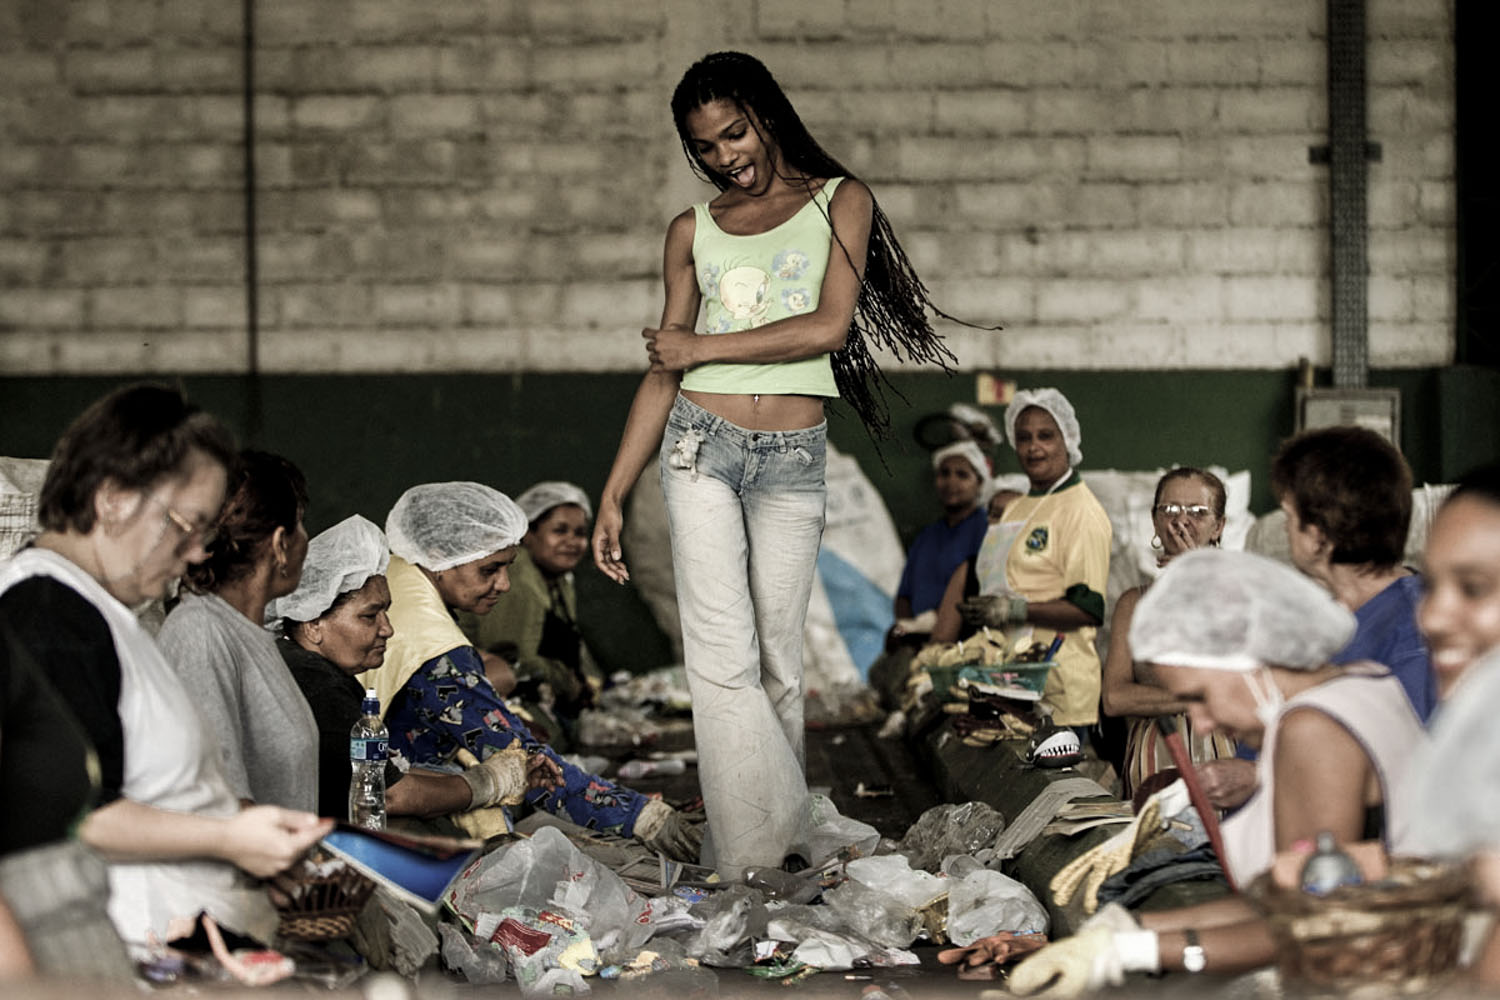 Worker plays parading at a Recycling Place in the suburbs of Sao Paulo.